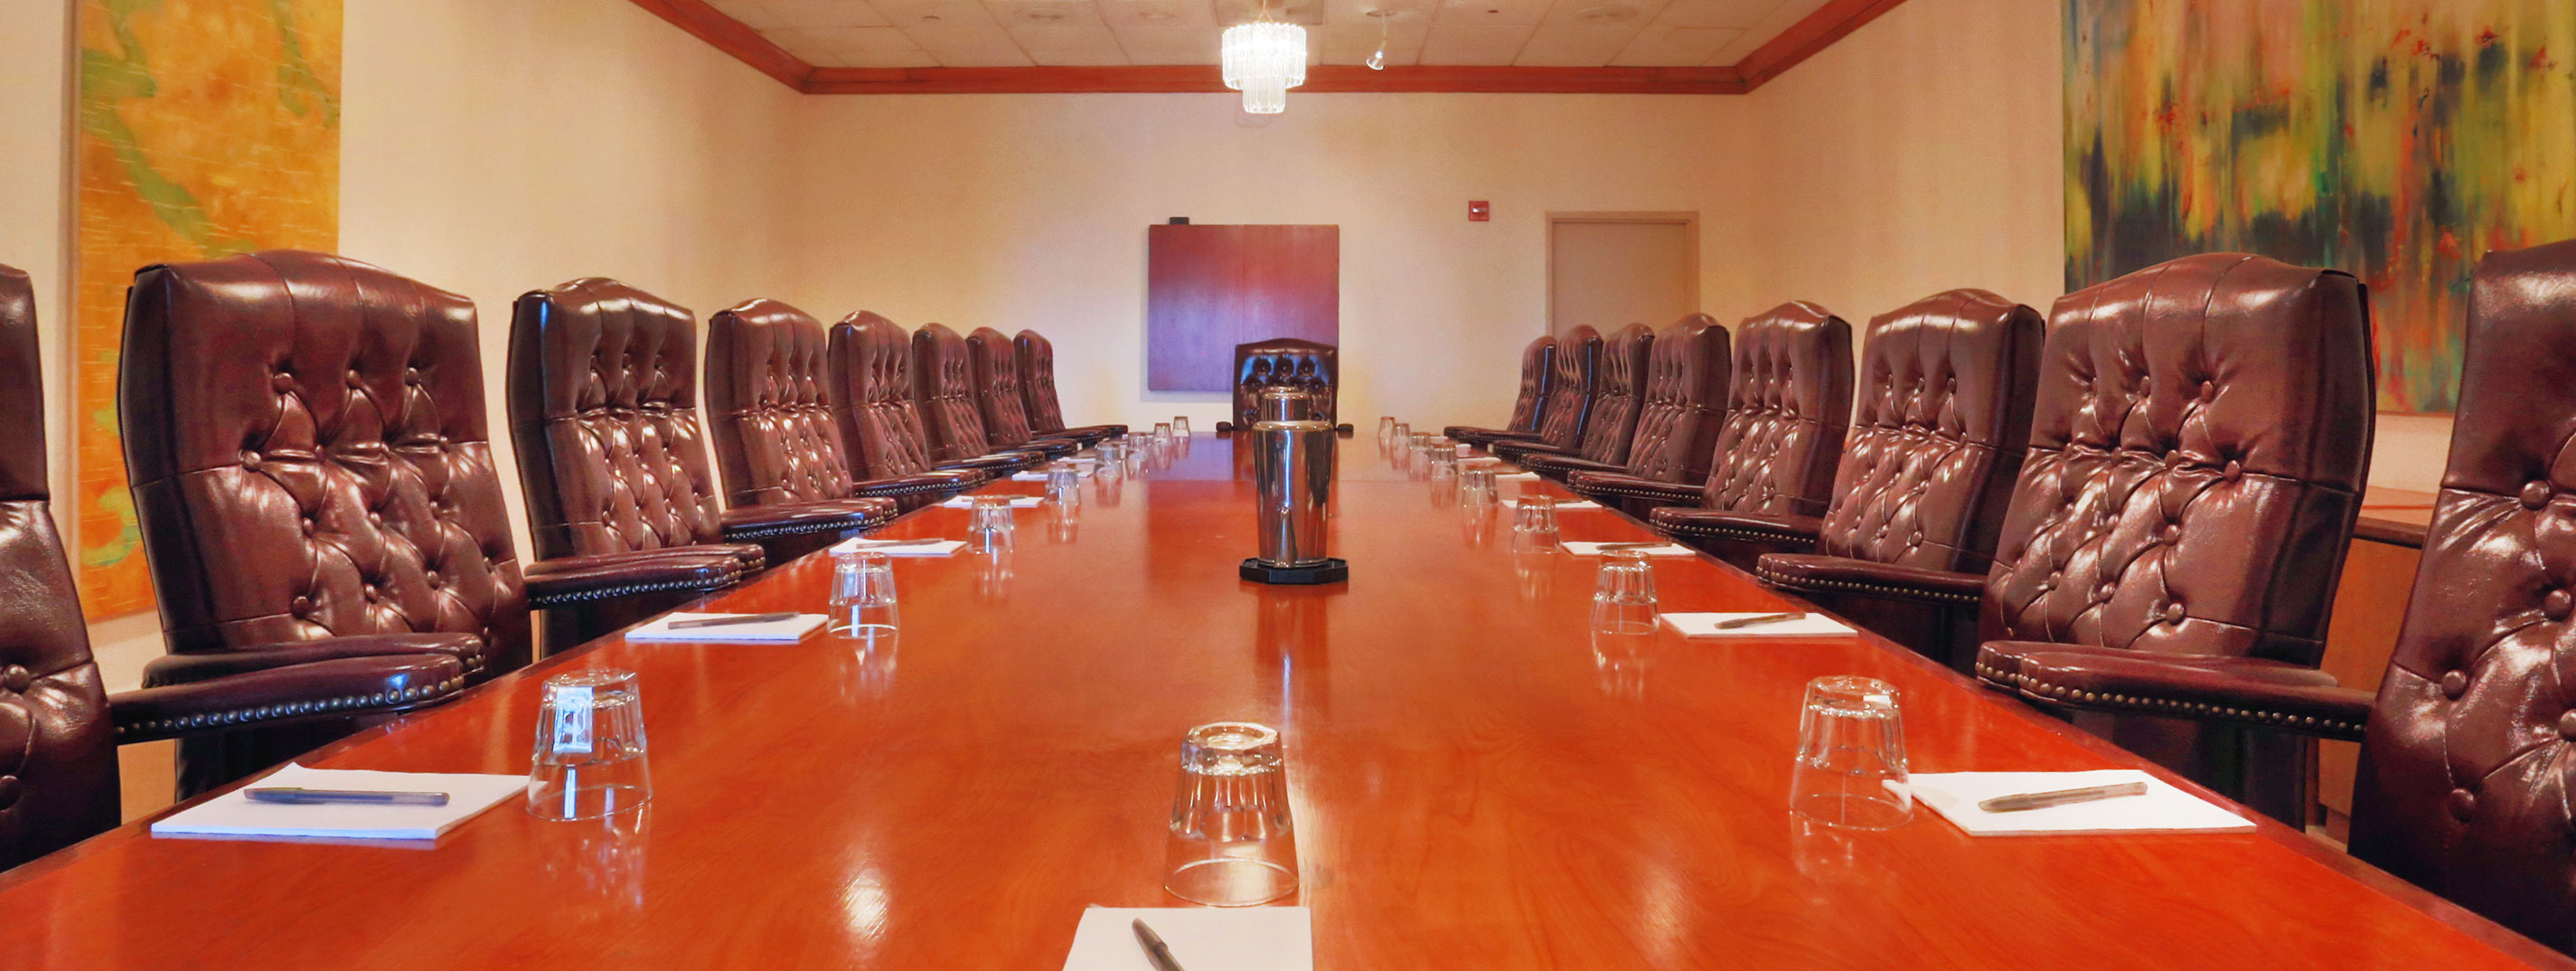 Davidson Boardroom Meetings Deauville Beach Resort